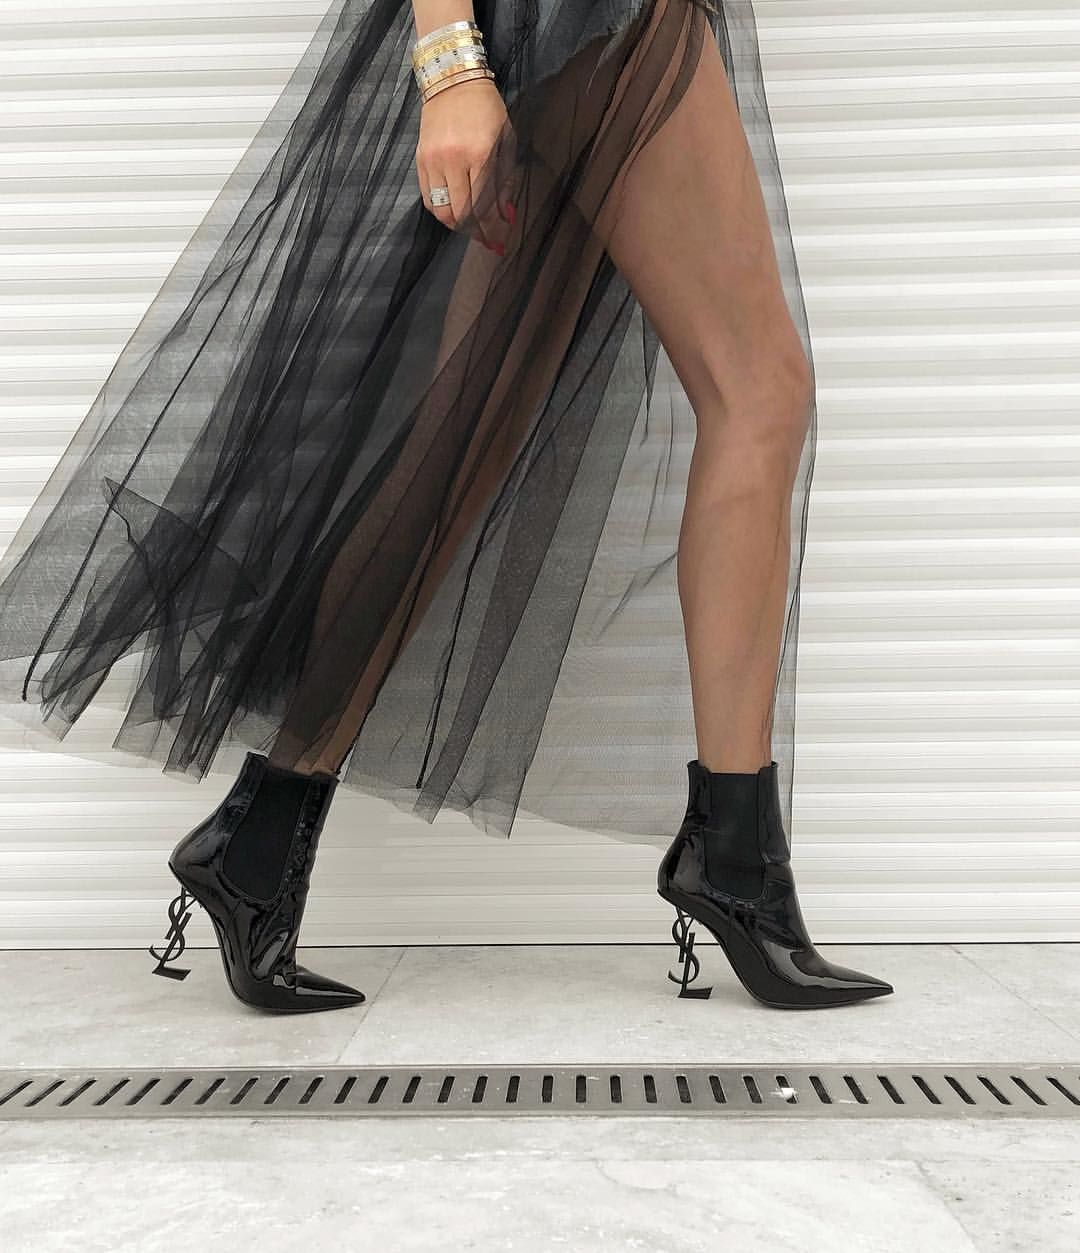 """0405dcc7832 Dressing is a way of life"""" -  YvesSaintLaurent  HM skirt with ..."""